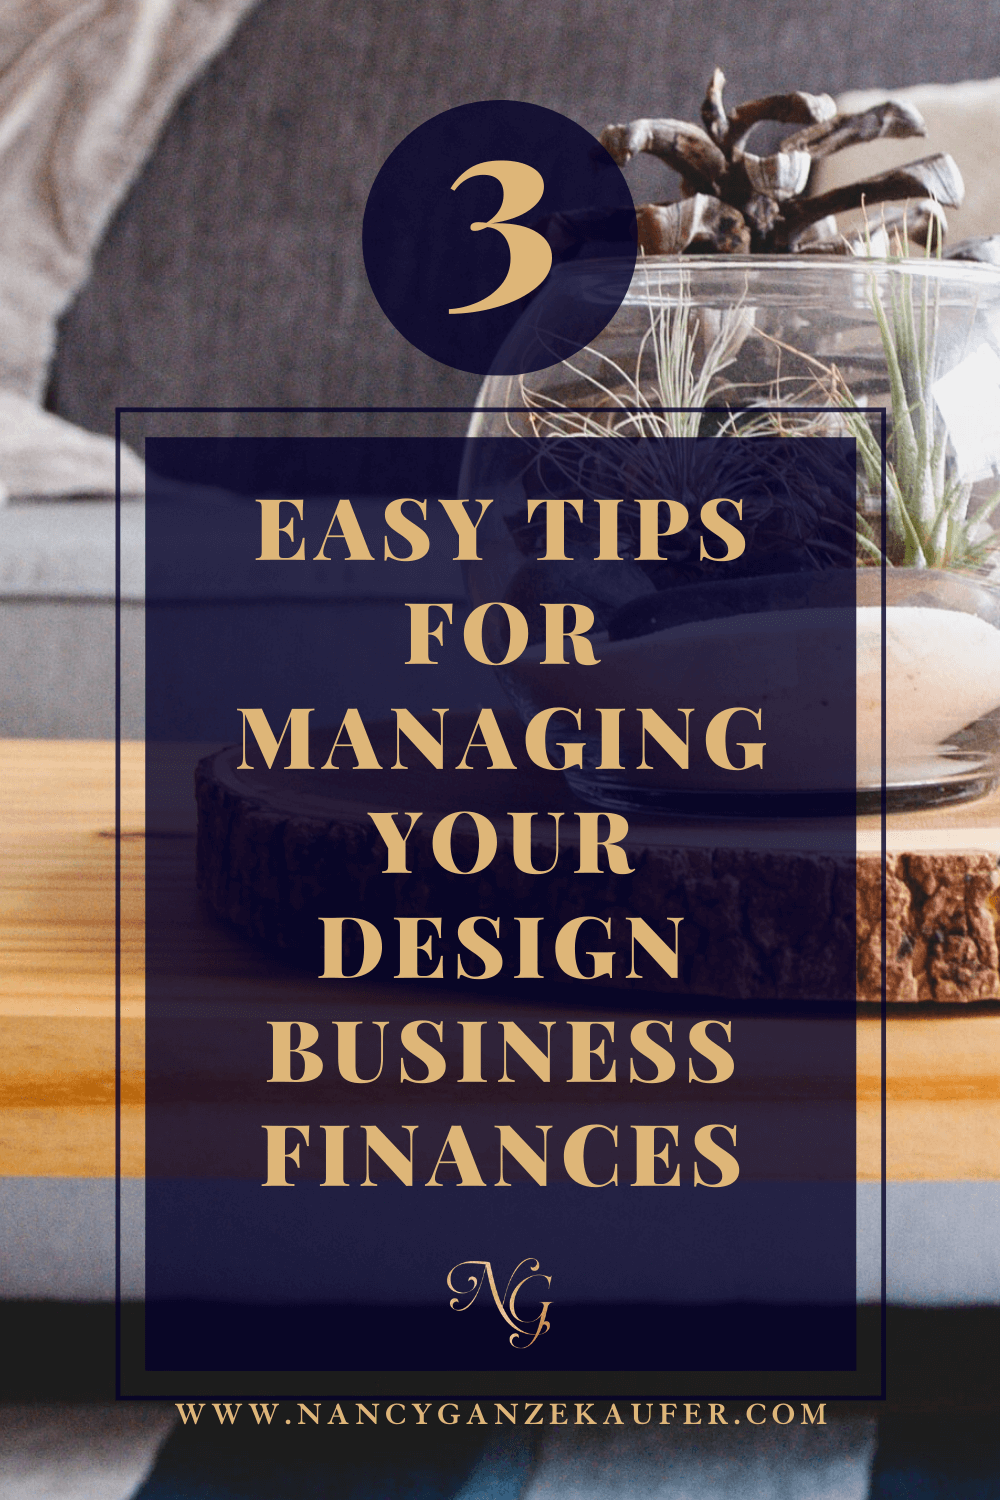 3 Easy tips for managing your design business finances.